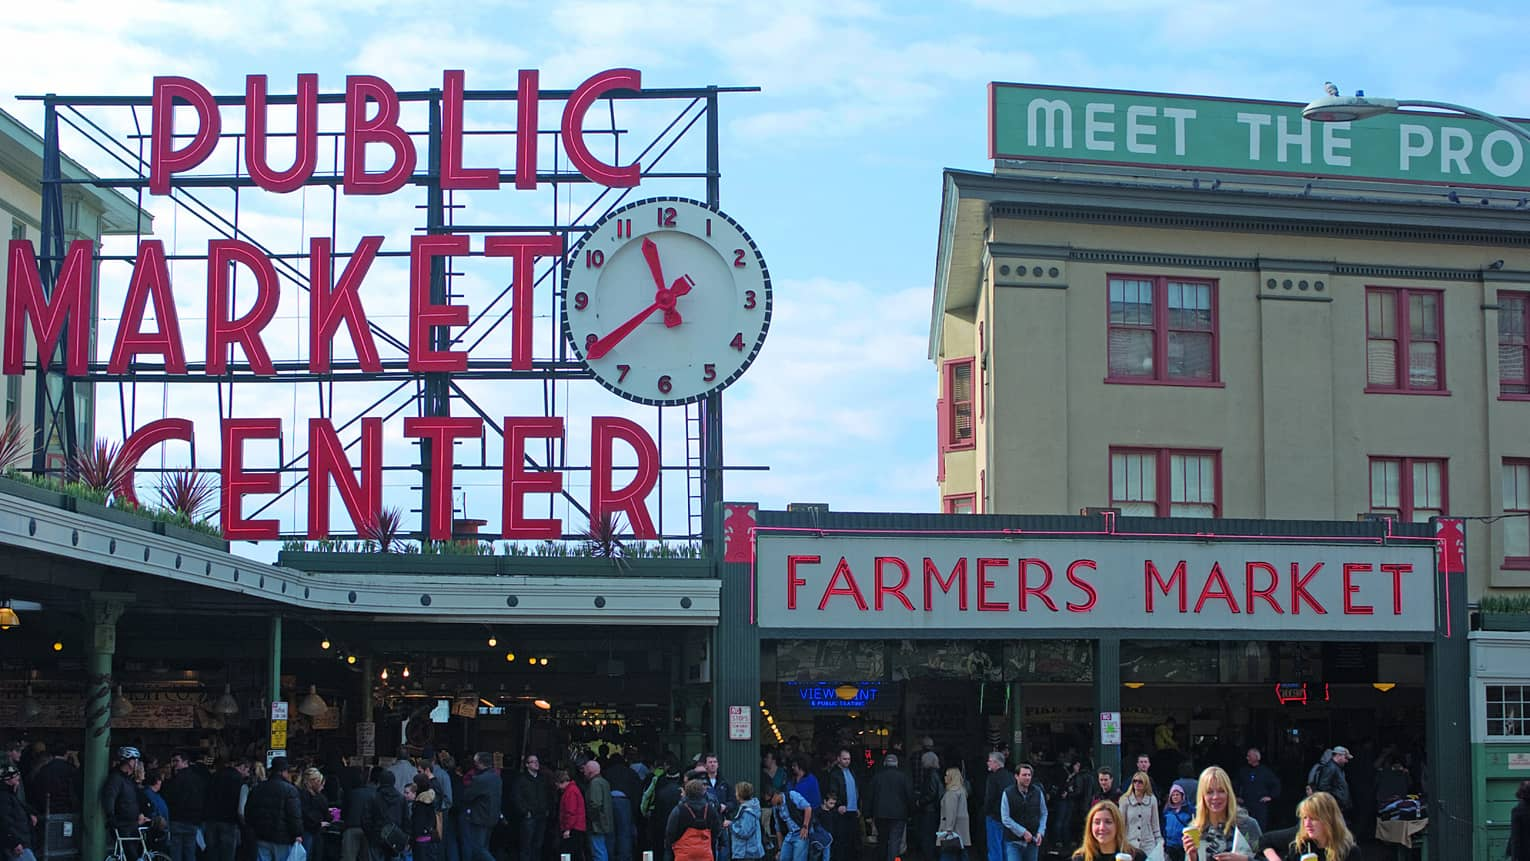 Public Market Center and Farmers Market signs over crowd along sidewalk